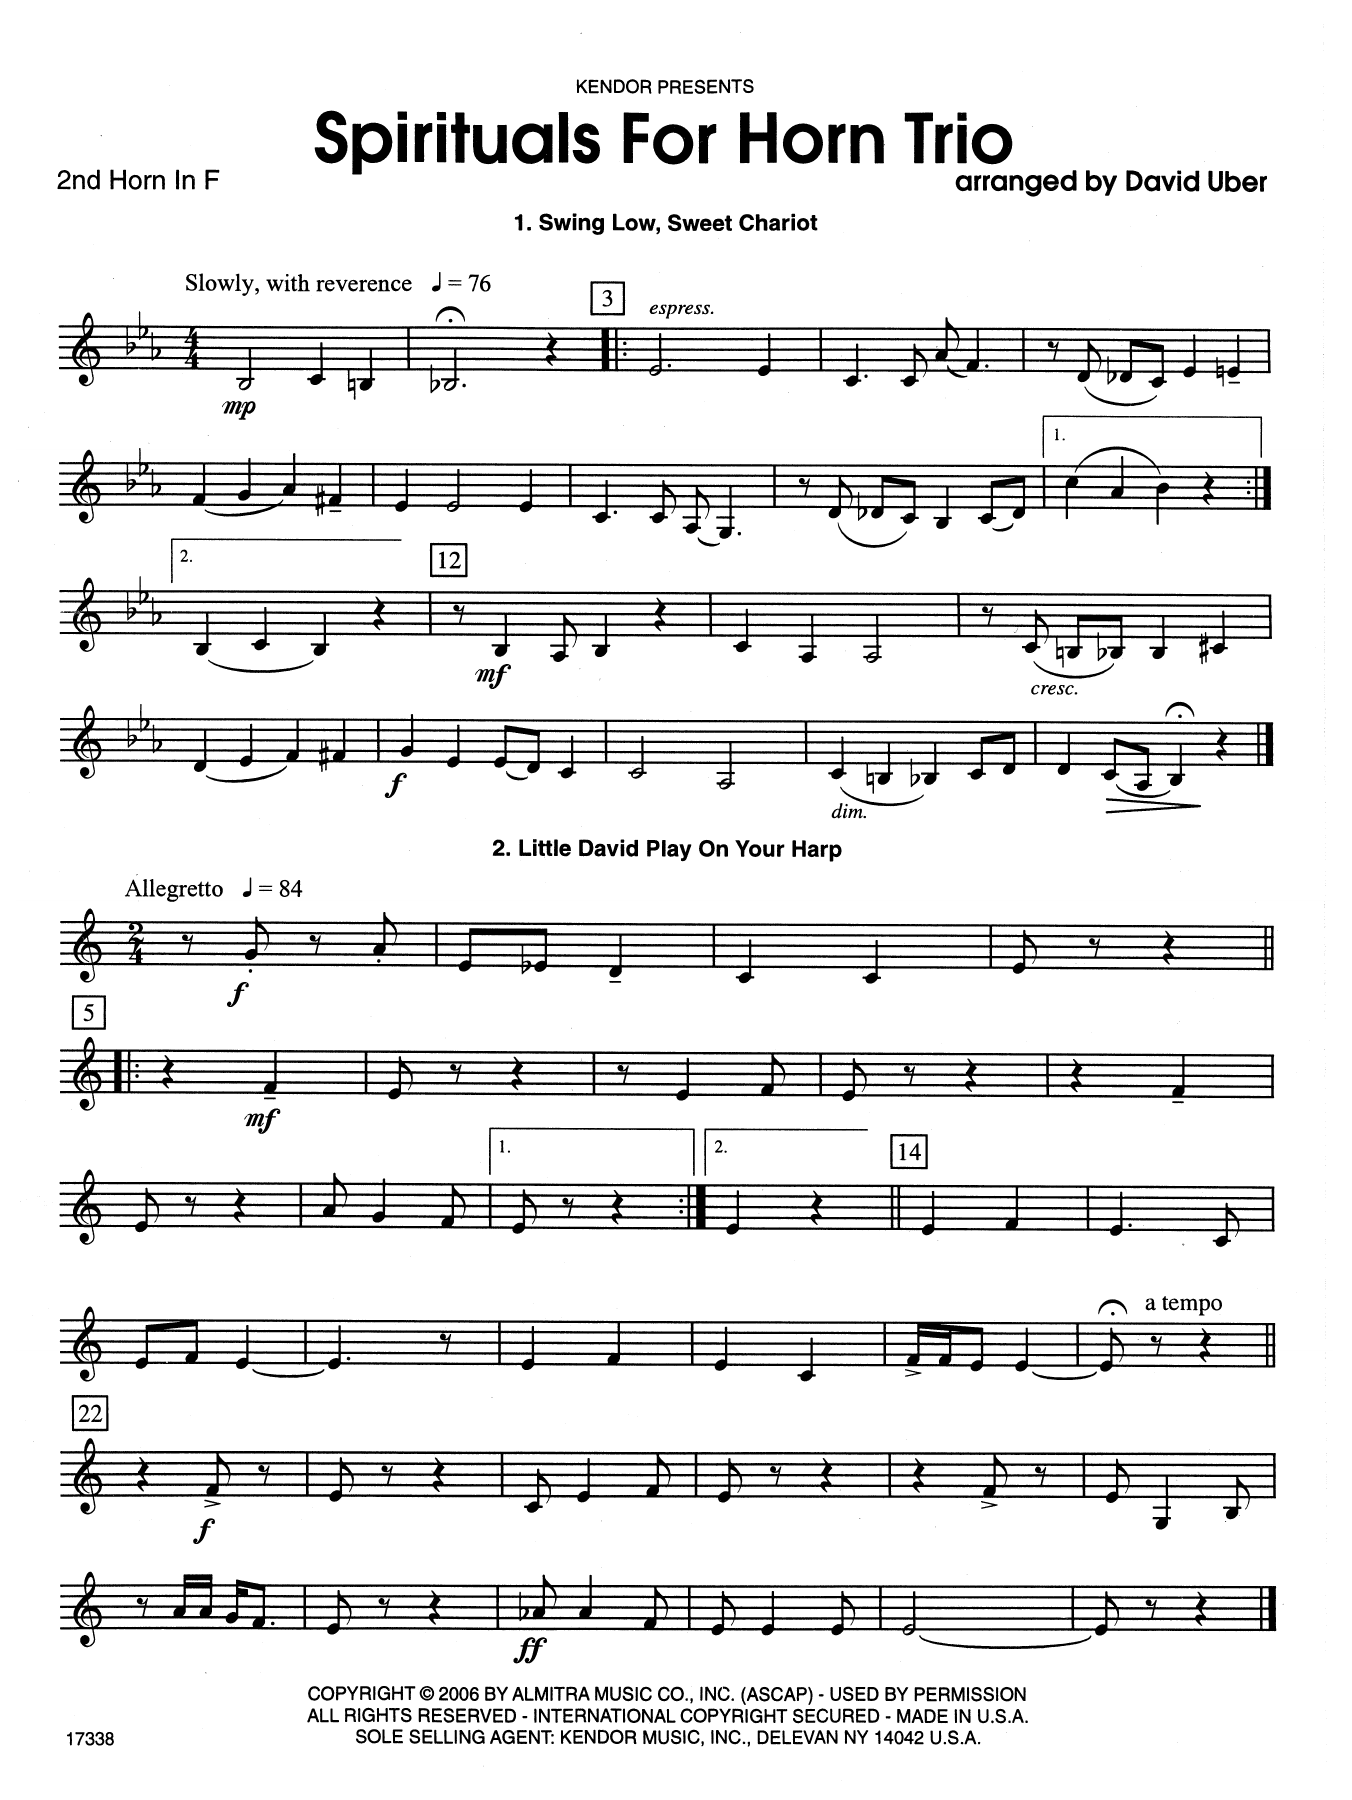 David Uber Spirituals For Horn Trio - 2nd Horn in F sheet music notes and chords. Download Printable PDF.